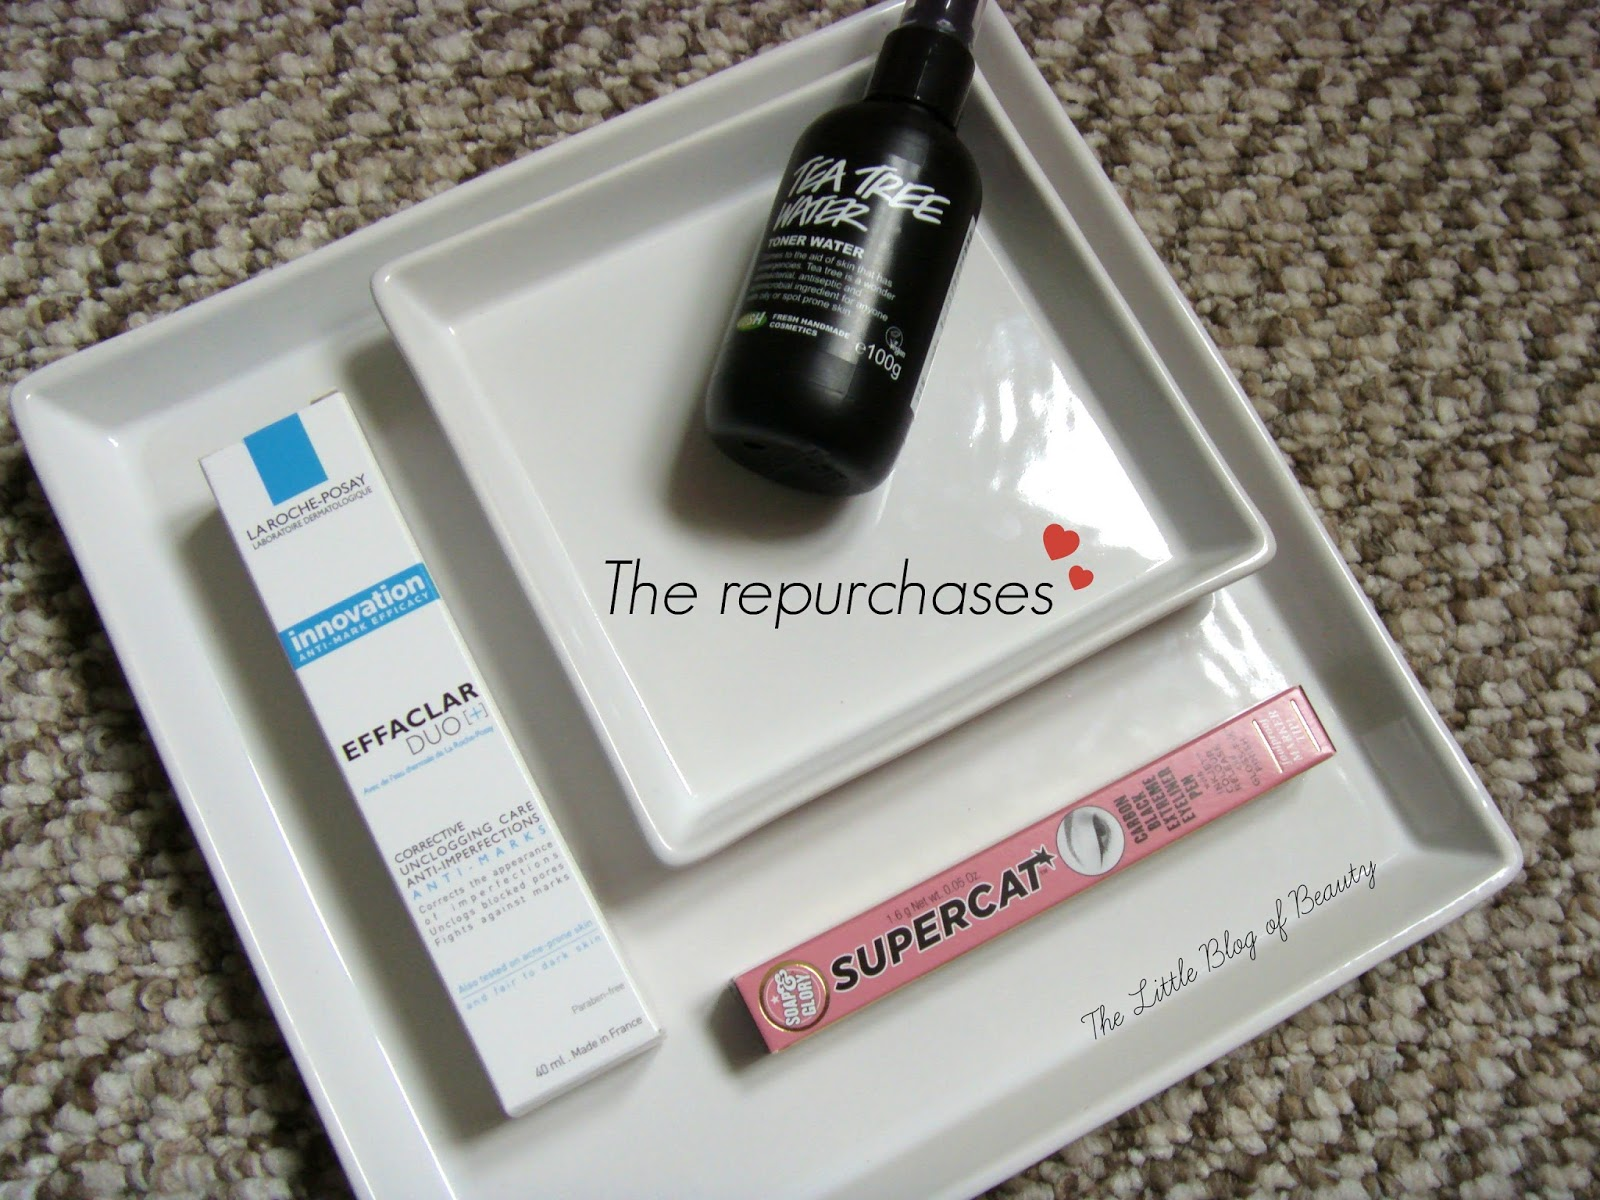 Lush Tea tree water, La Roche-Posay Effaclar Duo+ and Soap & Glory Supercat